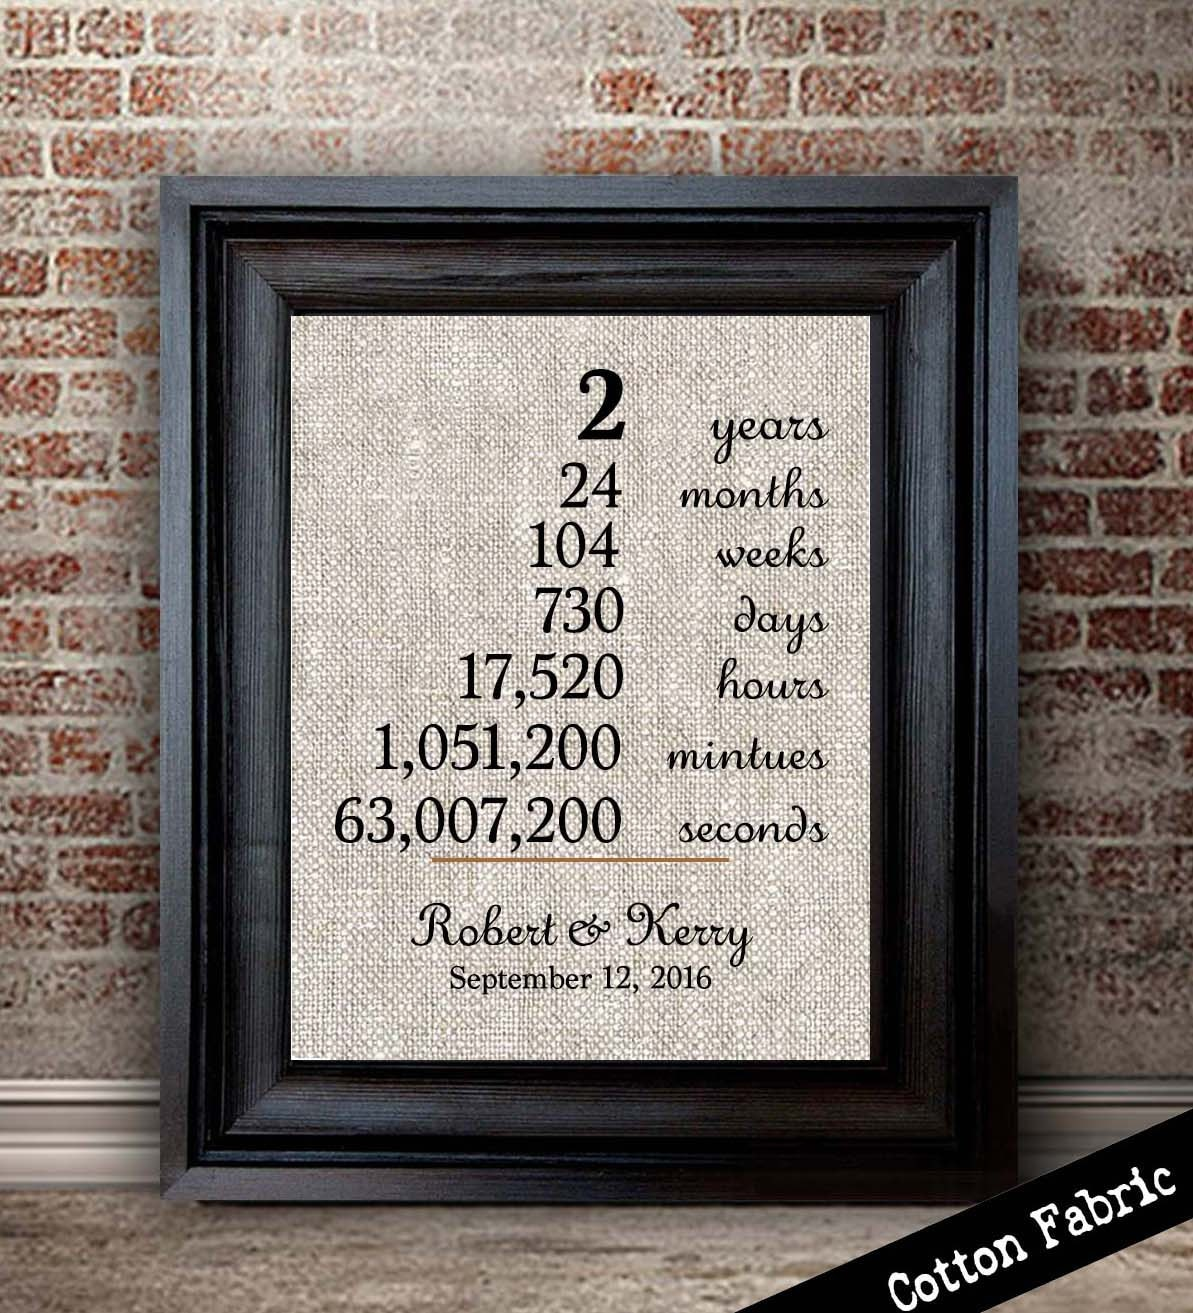 Cotton Wedding Anniversary Gifts For Him: Cotton Anniversary Gift For Her Wedding Anniversary Print